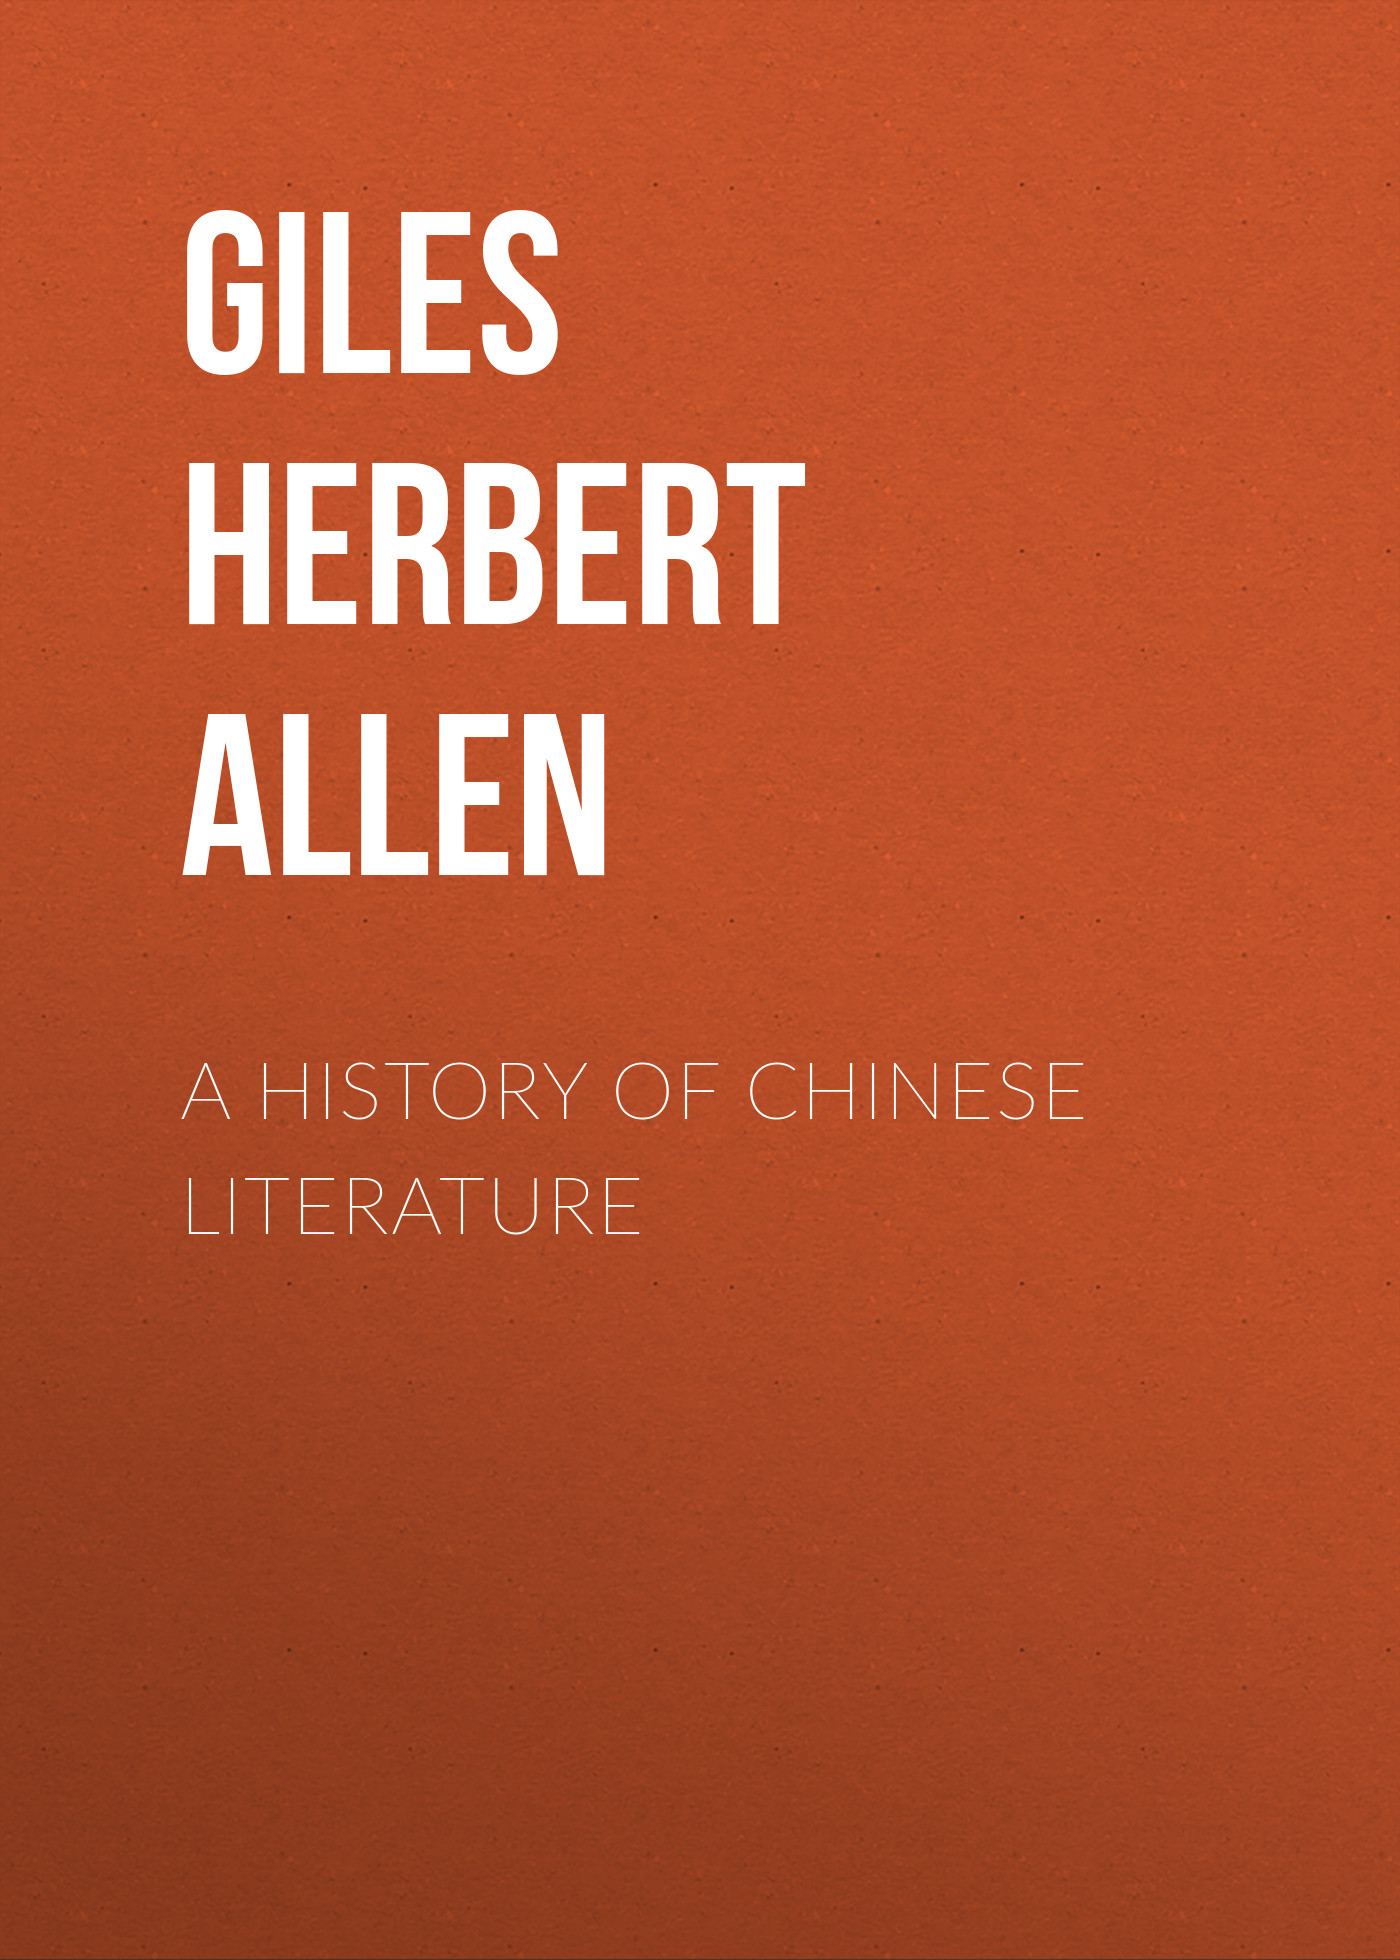 Giles Herbert Allen A History of Chinese Literature a new history of french literature paper